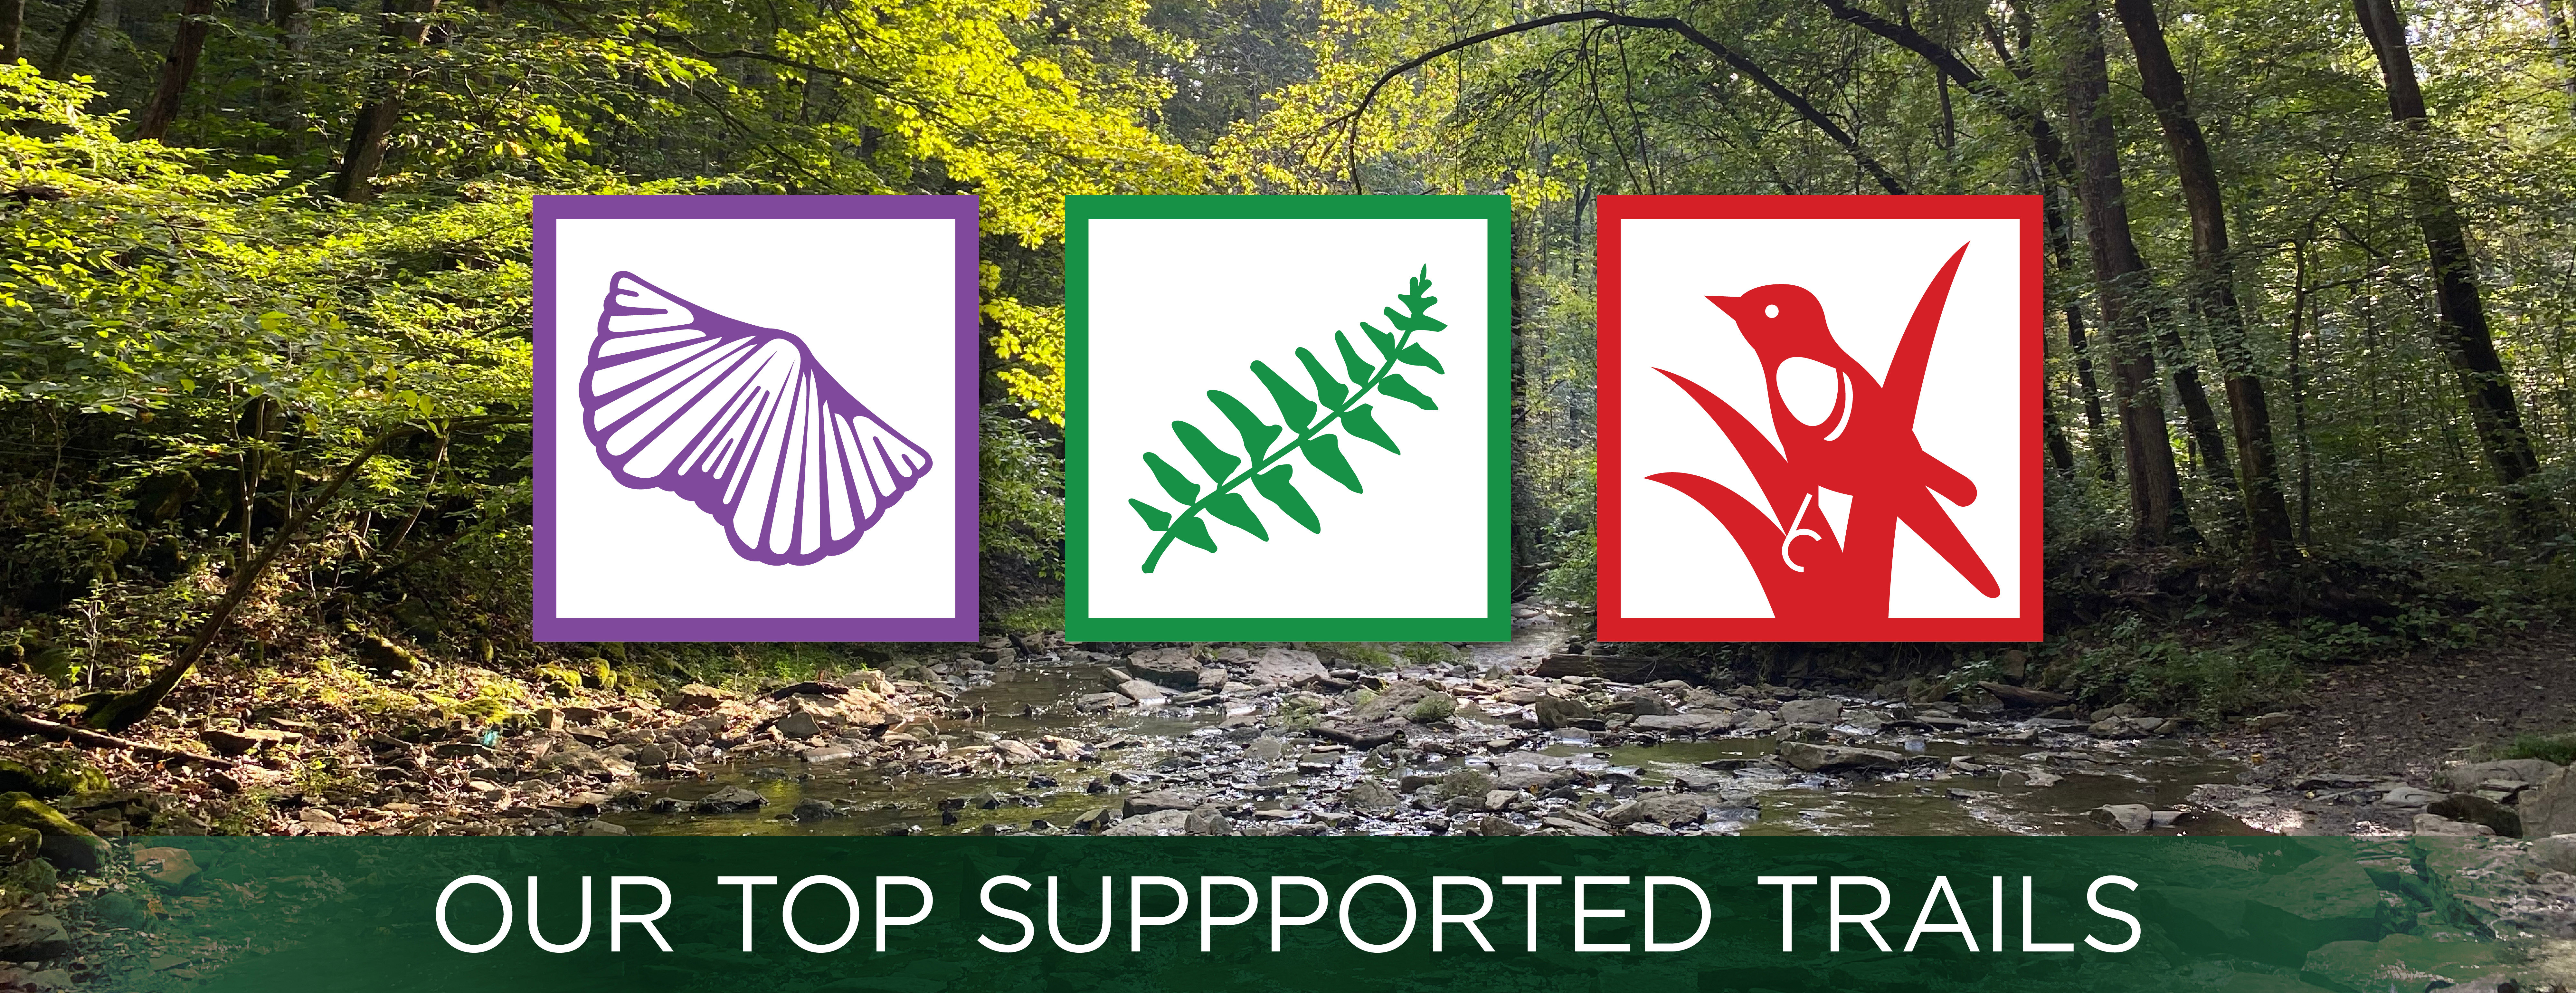 Top Supported Trails Icons - Geology, Fernwood, and Redwing